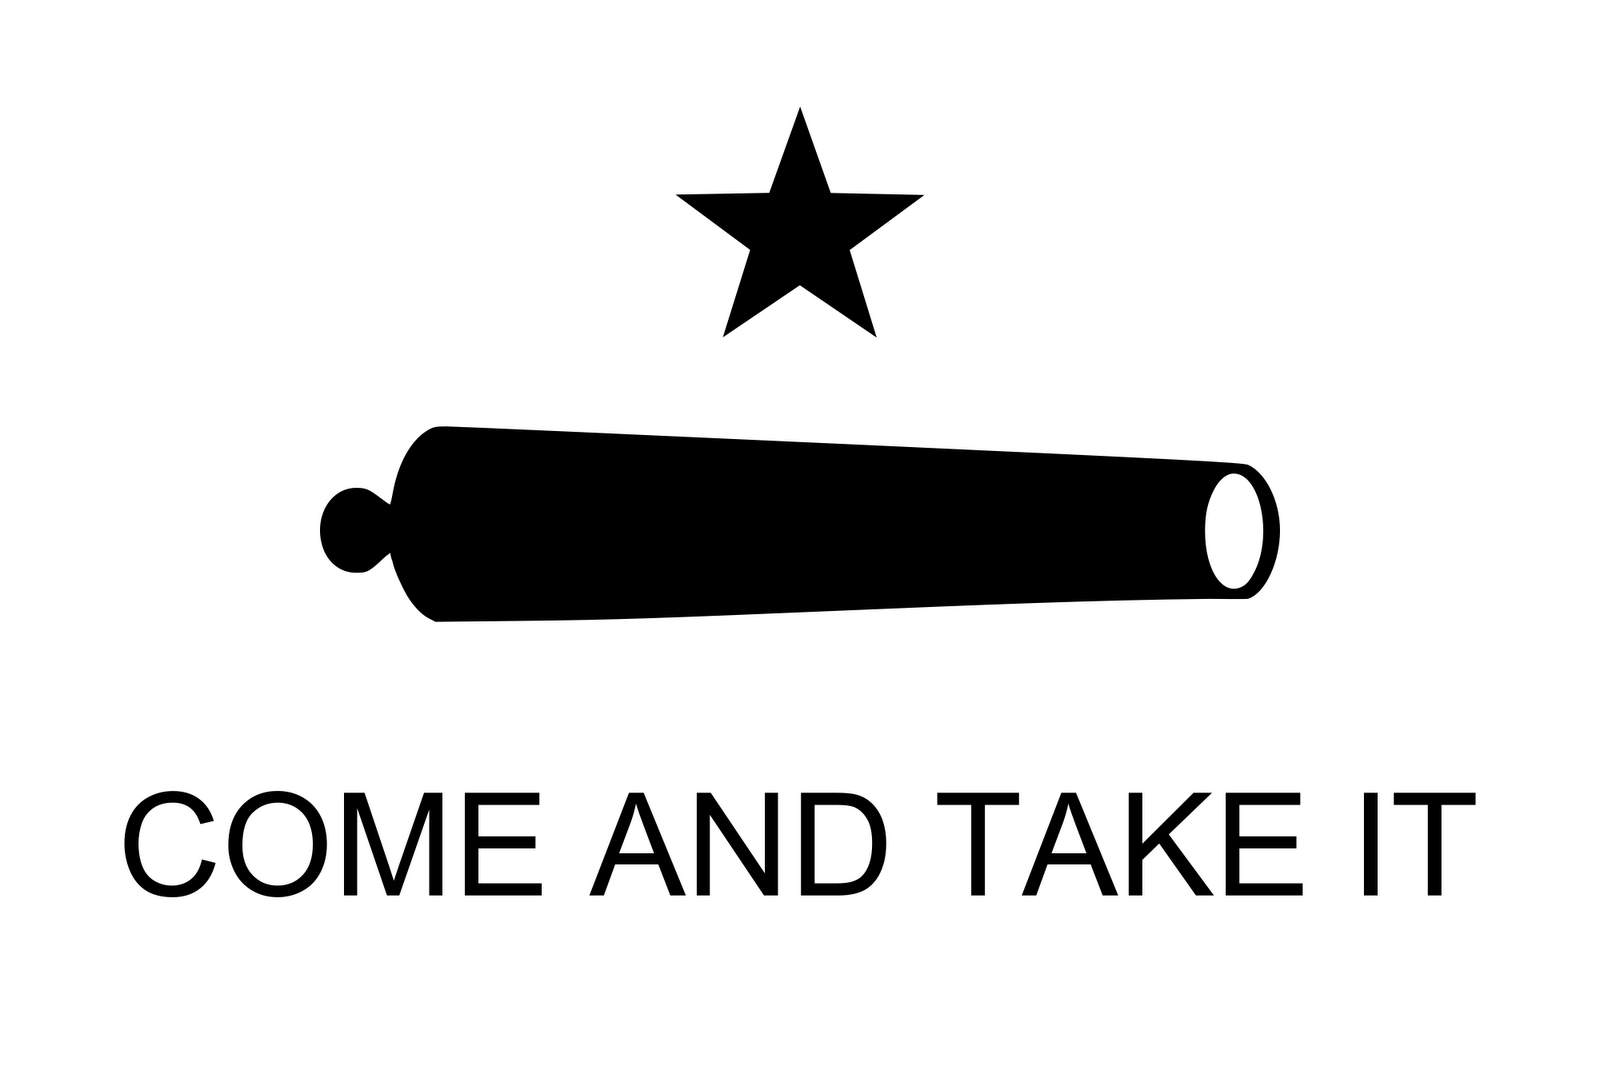 Public Domain Clip Art Photos and Images: Texas Flag Come and Take It